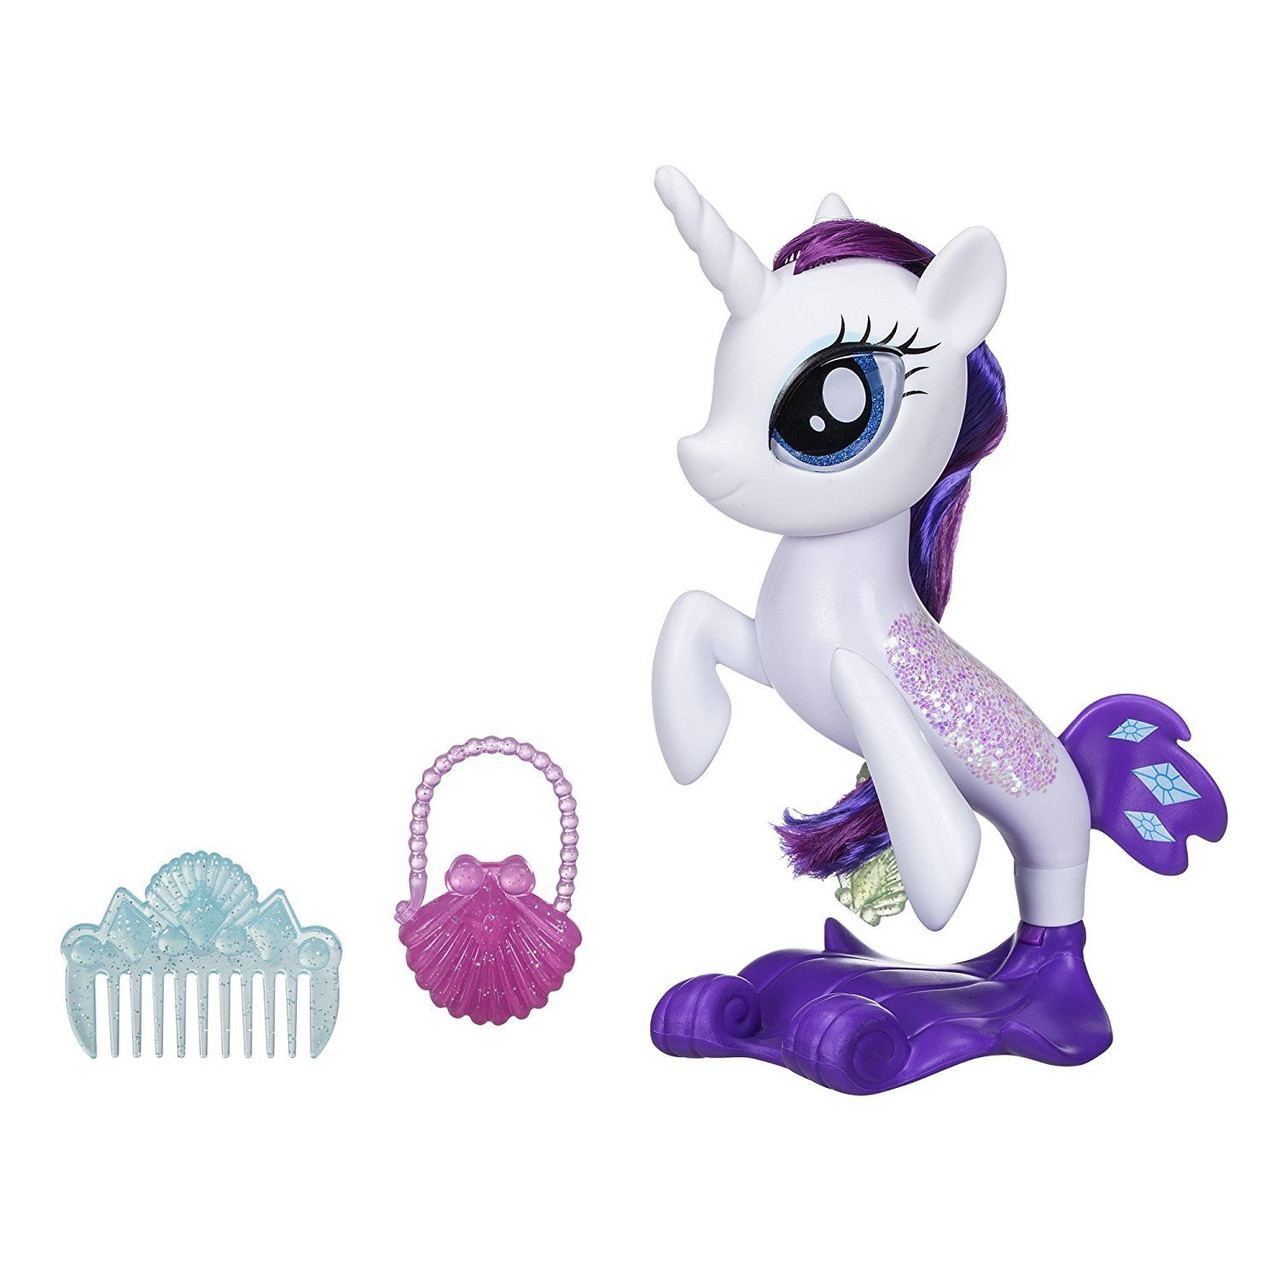 MY LITTLE PONY THE MOVIE GLITTER & STYLE SEAPONY RARITY